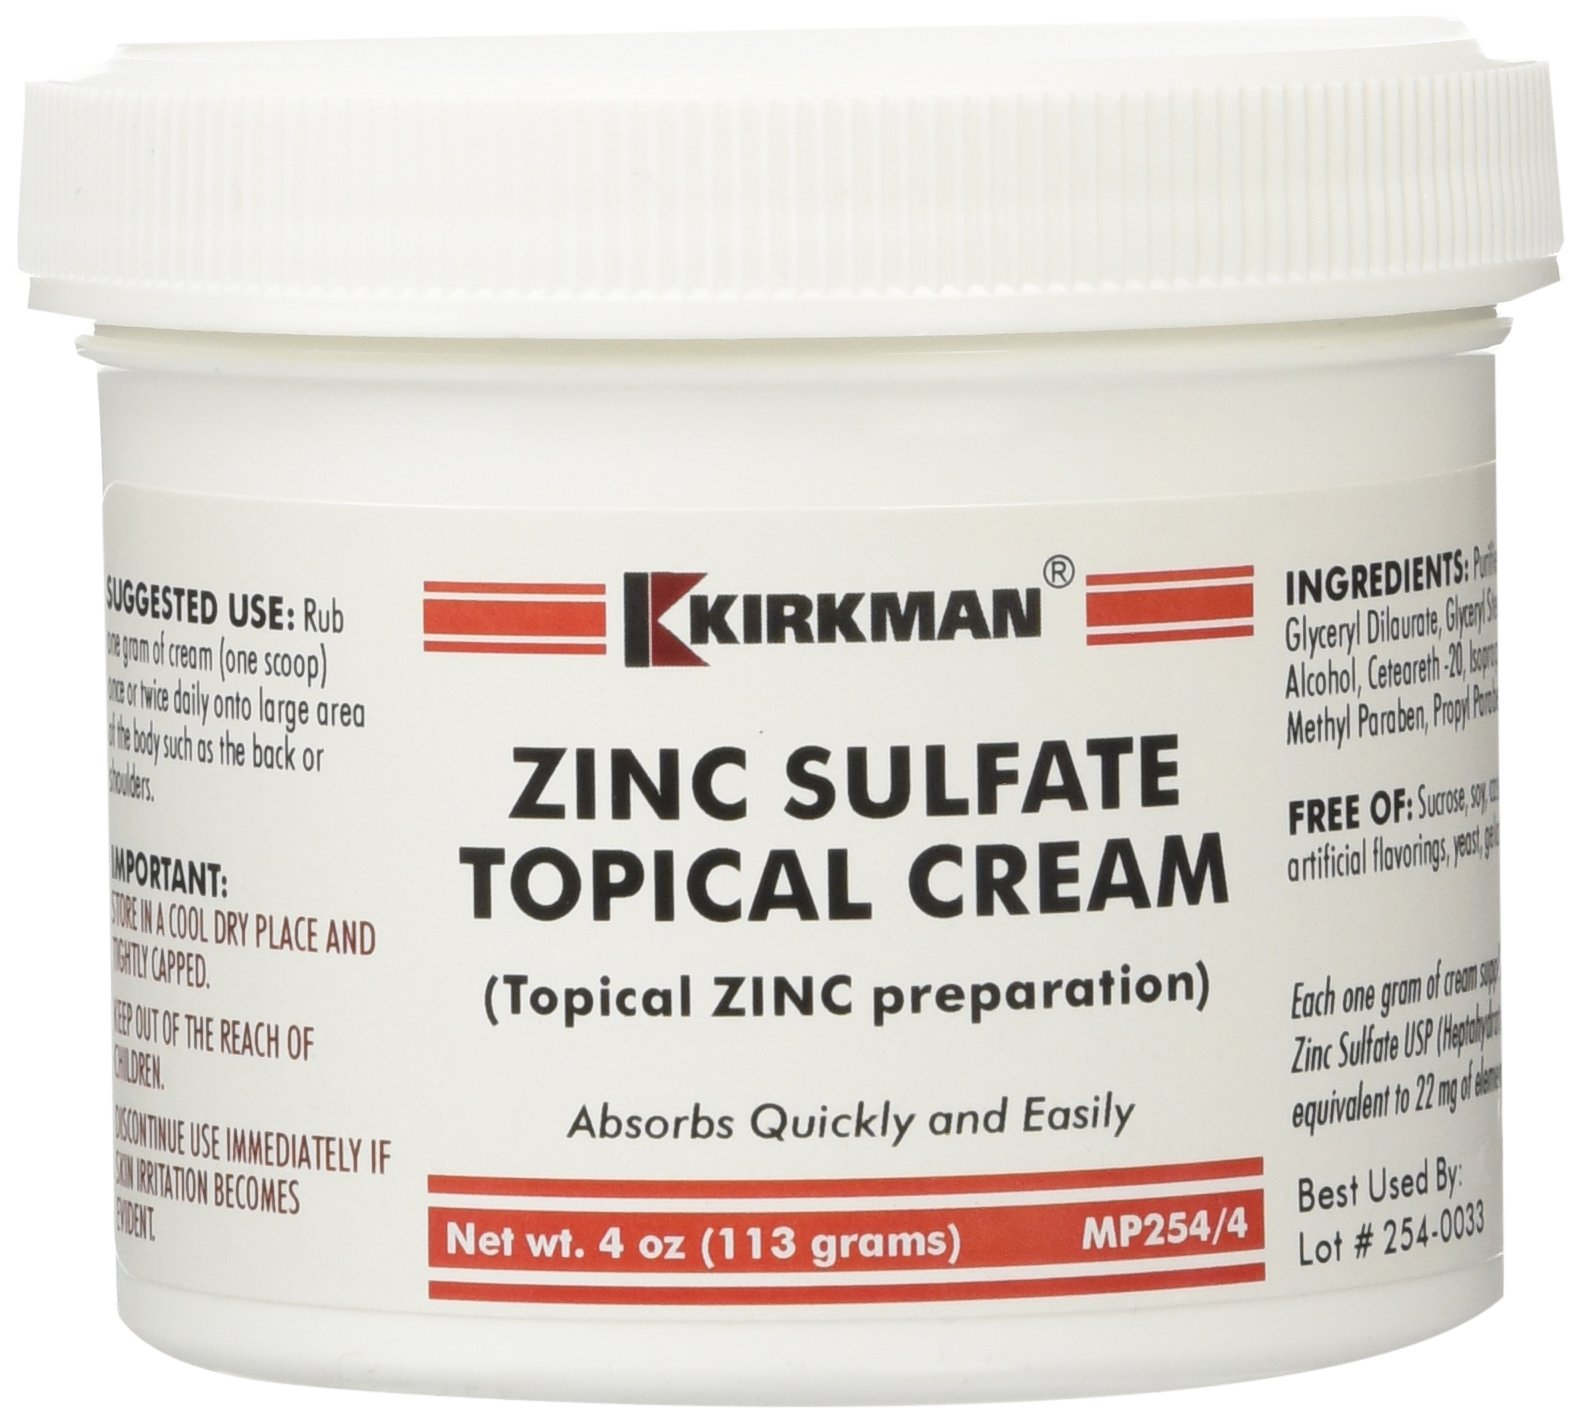 What is zinc ointment used for?